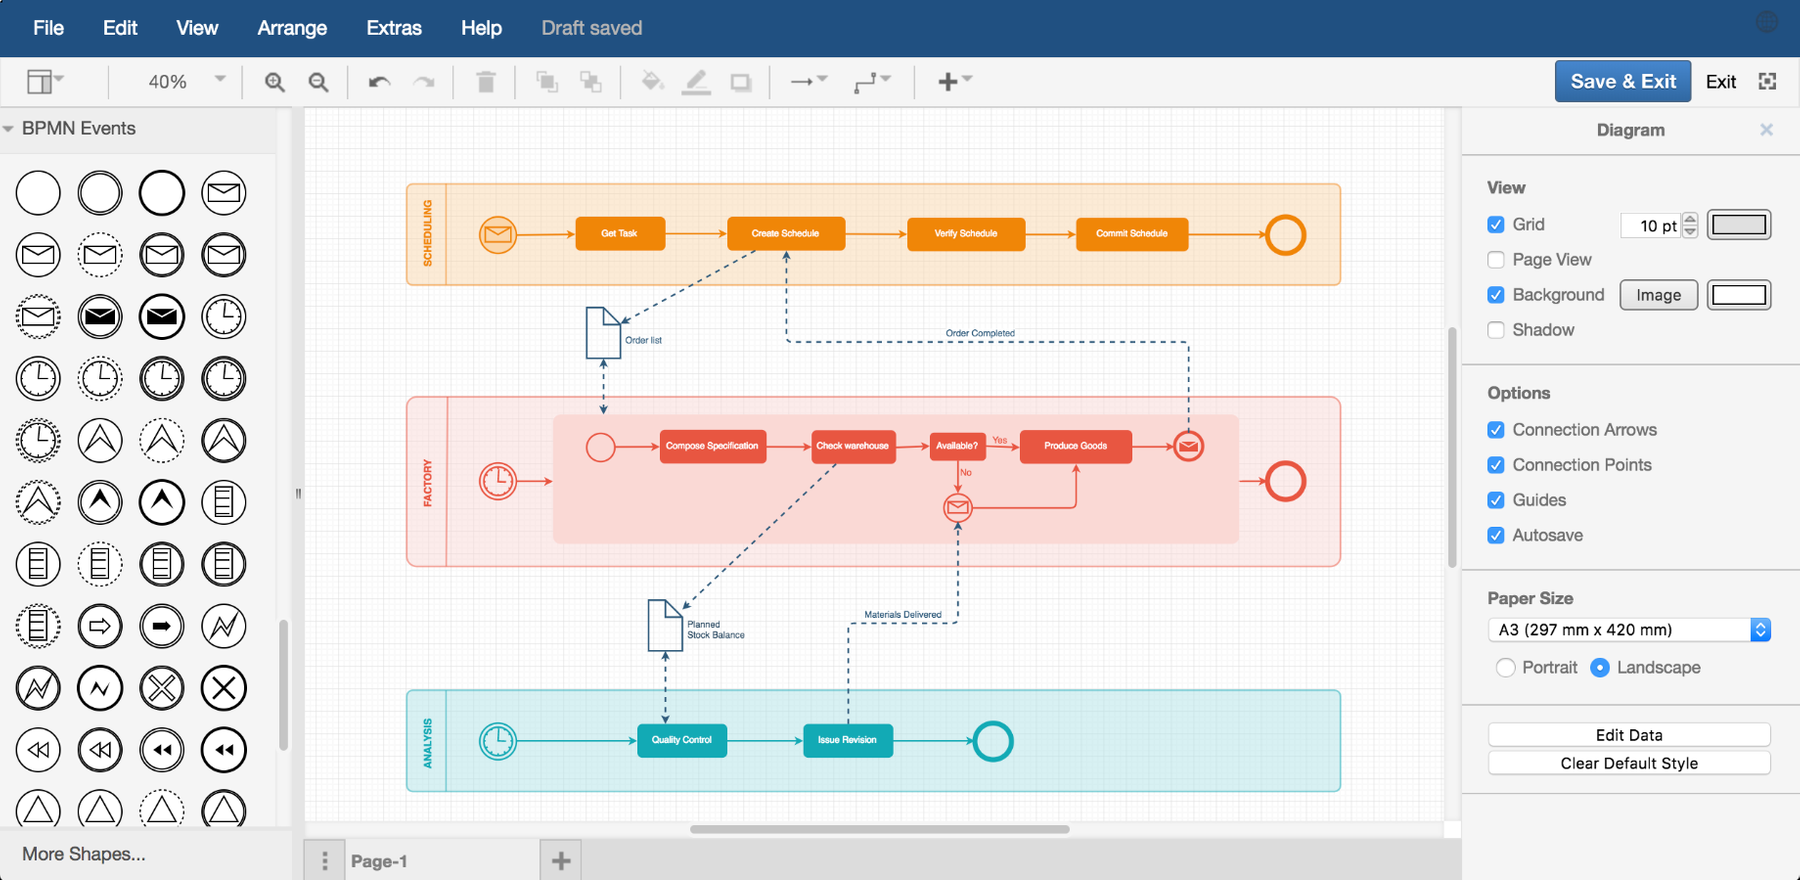 Create a bpmn diagram in draw.io